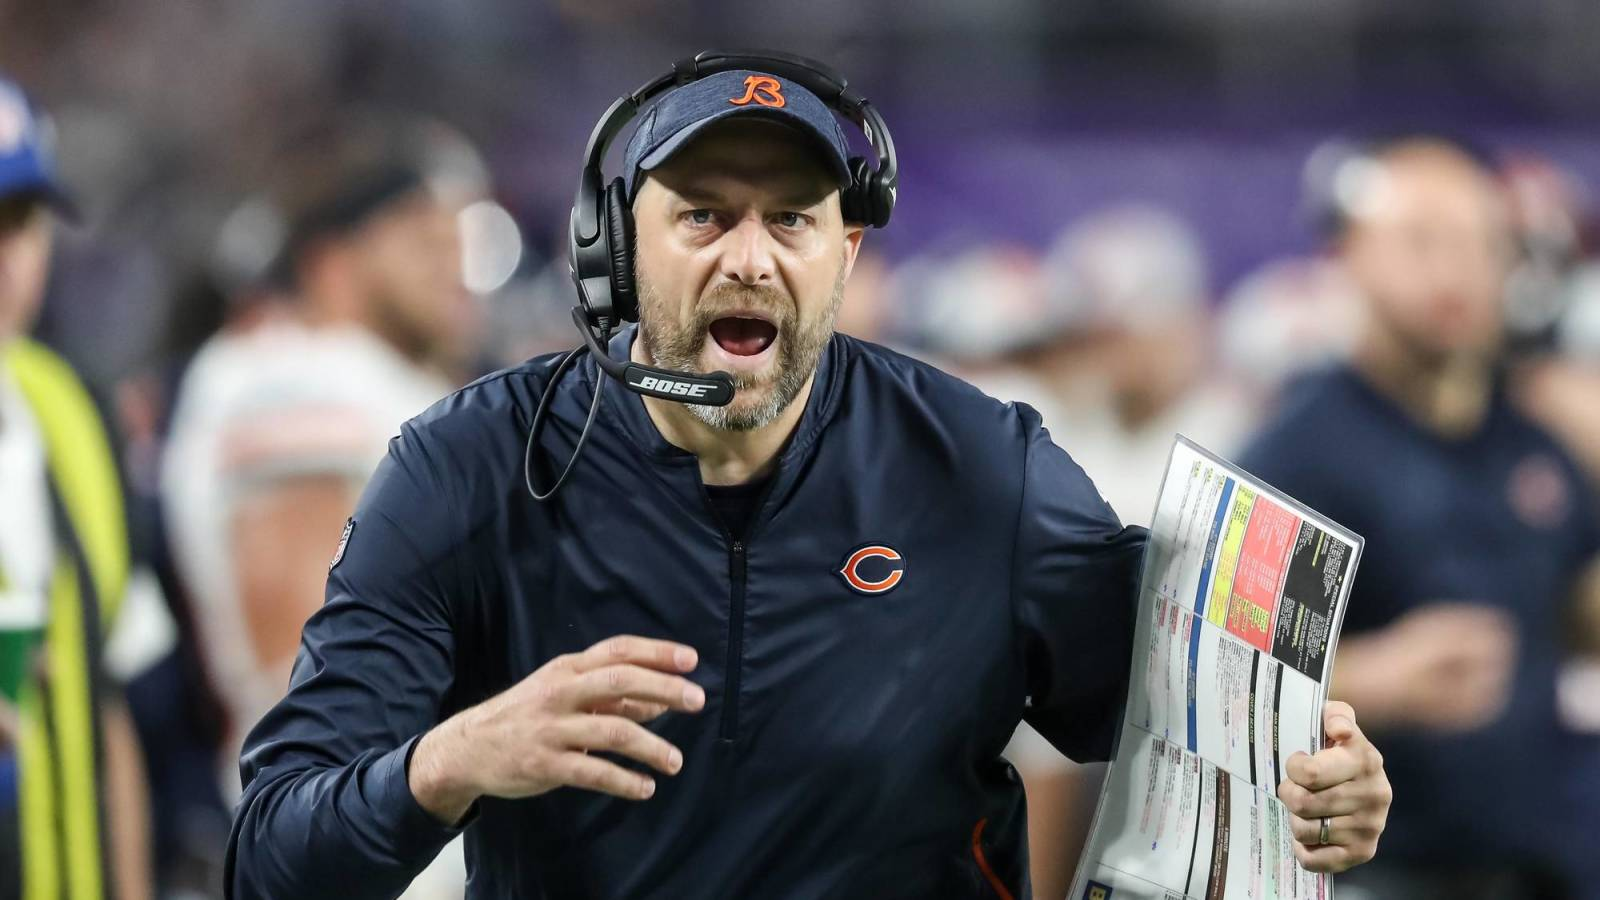 Bears' kicker competition gets off to laughable start